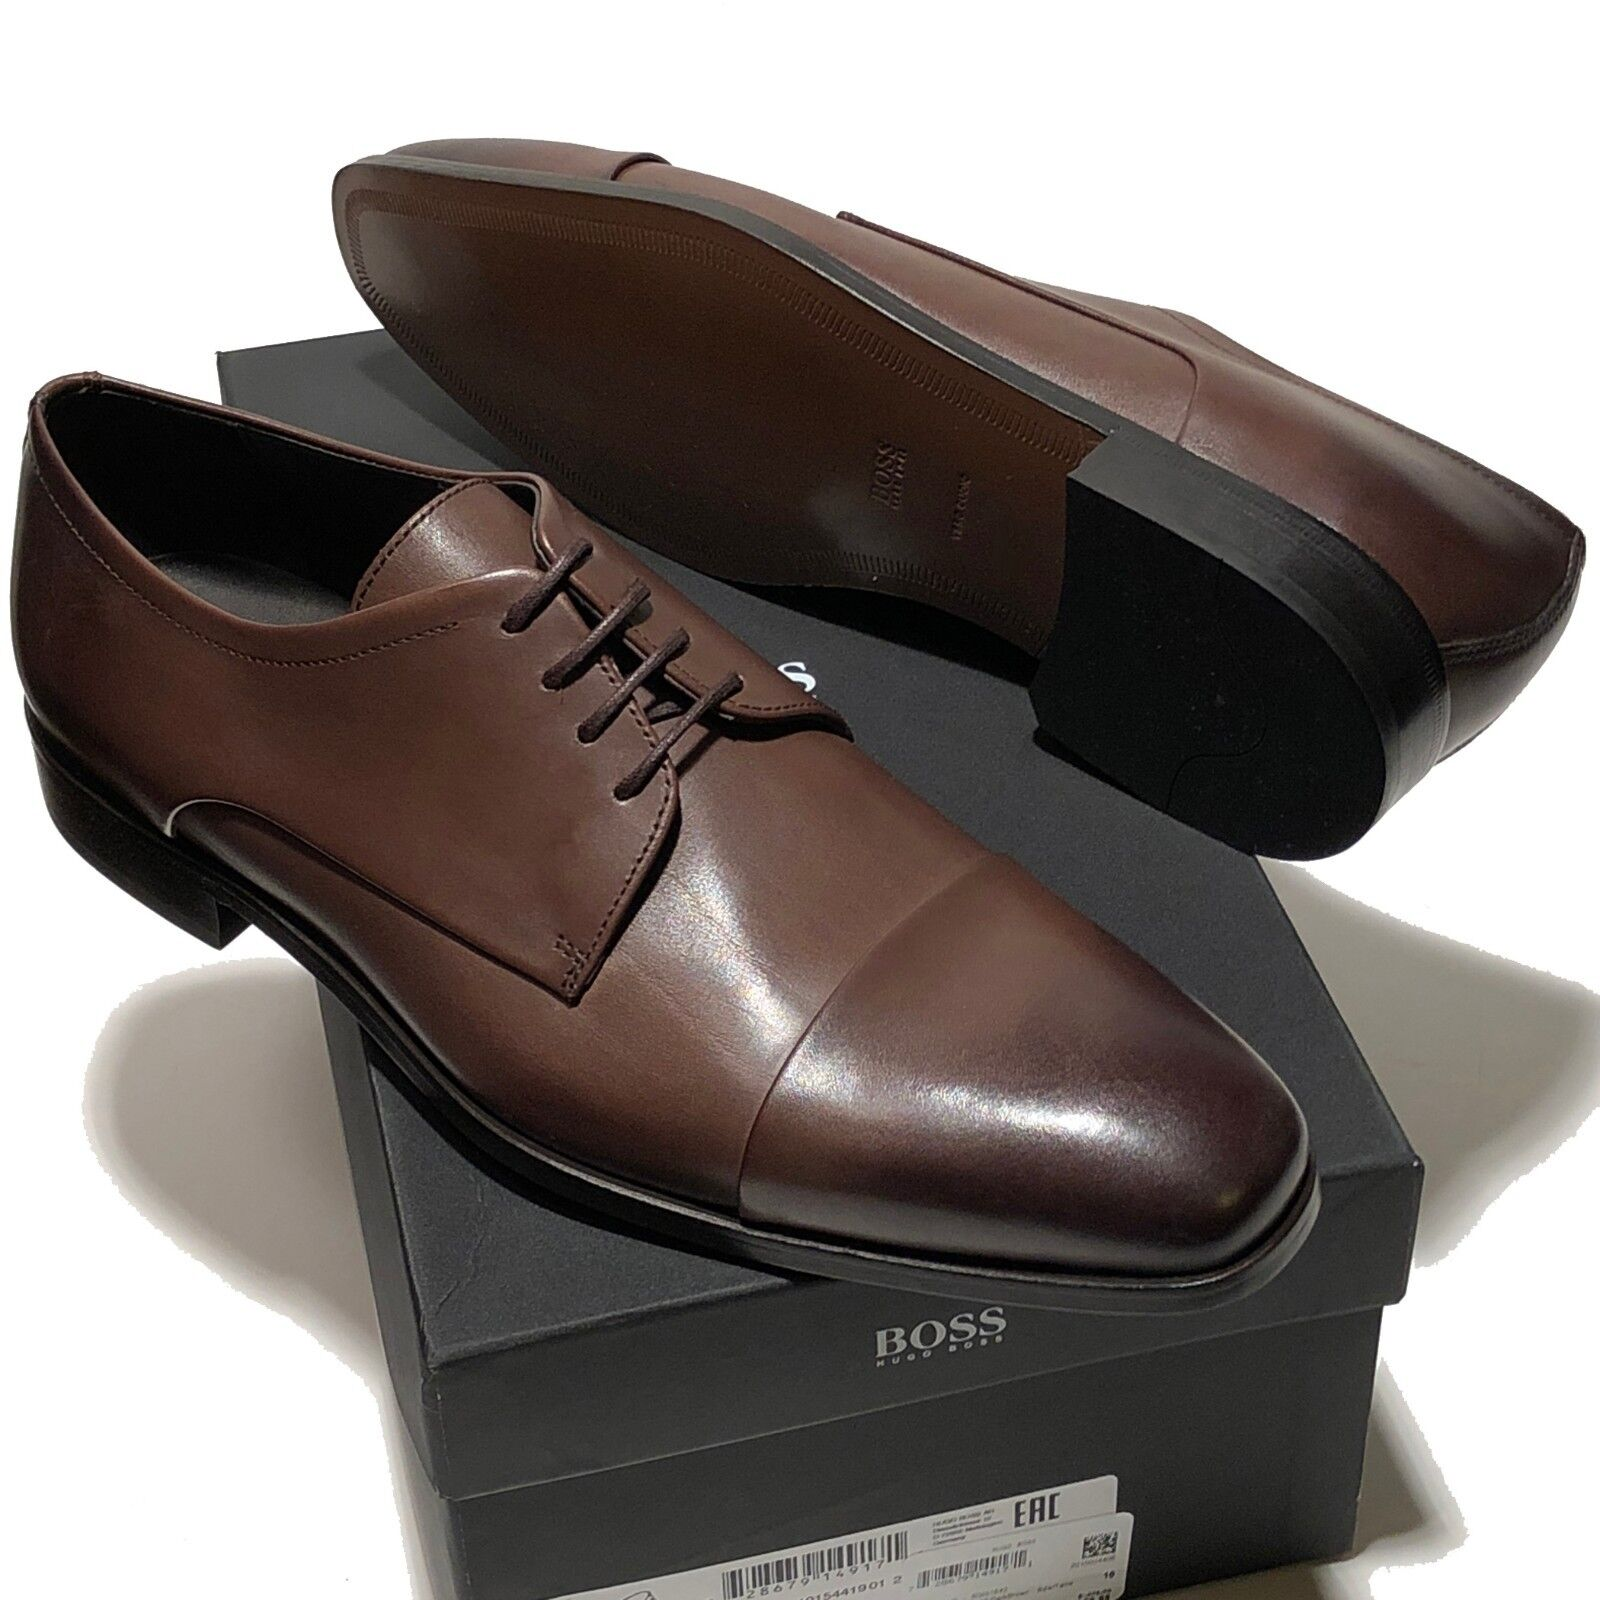 SPECIAL  HUGO BOSS Dark Brown Leather COLOSONS Captoe Men's Oxford Dress Casual